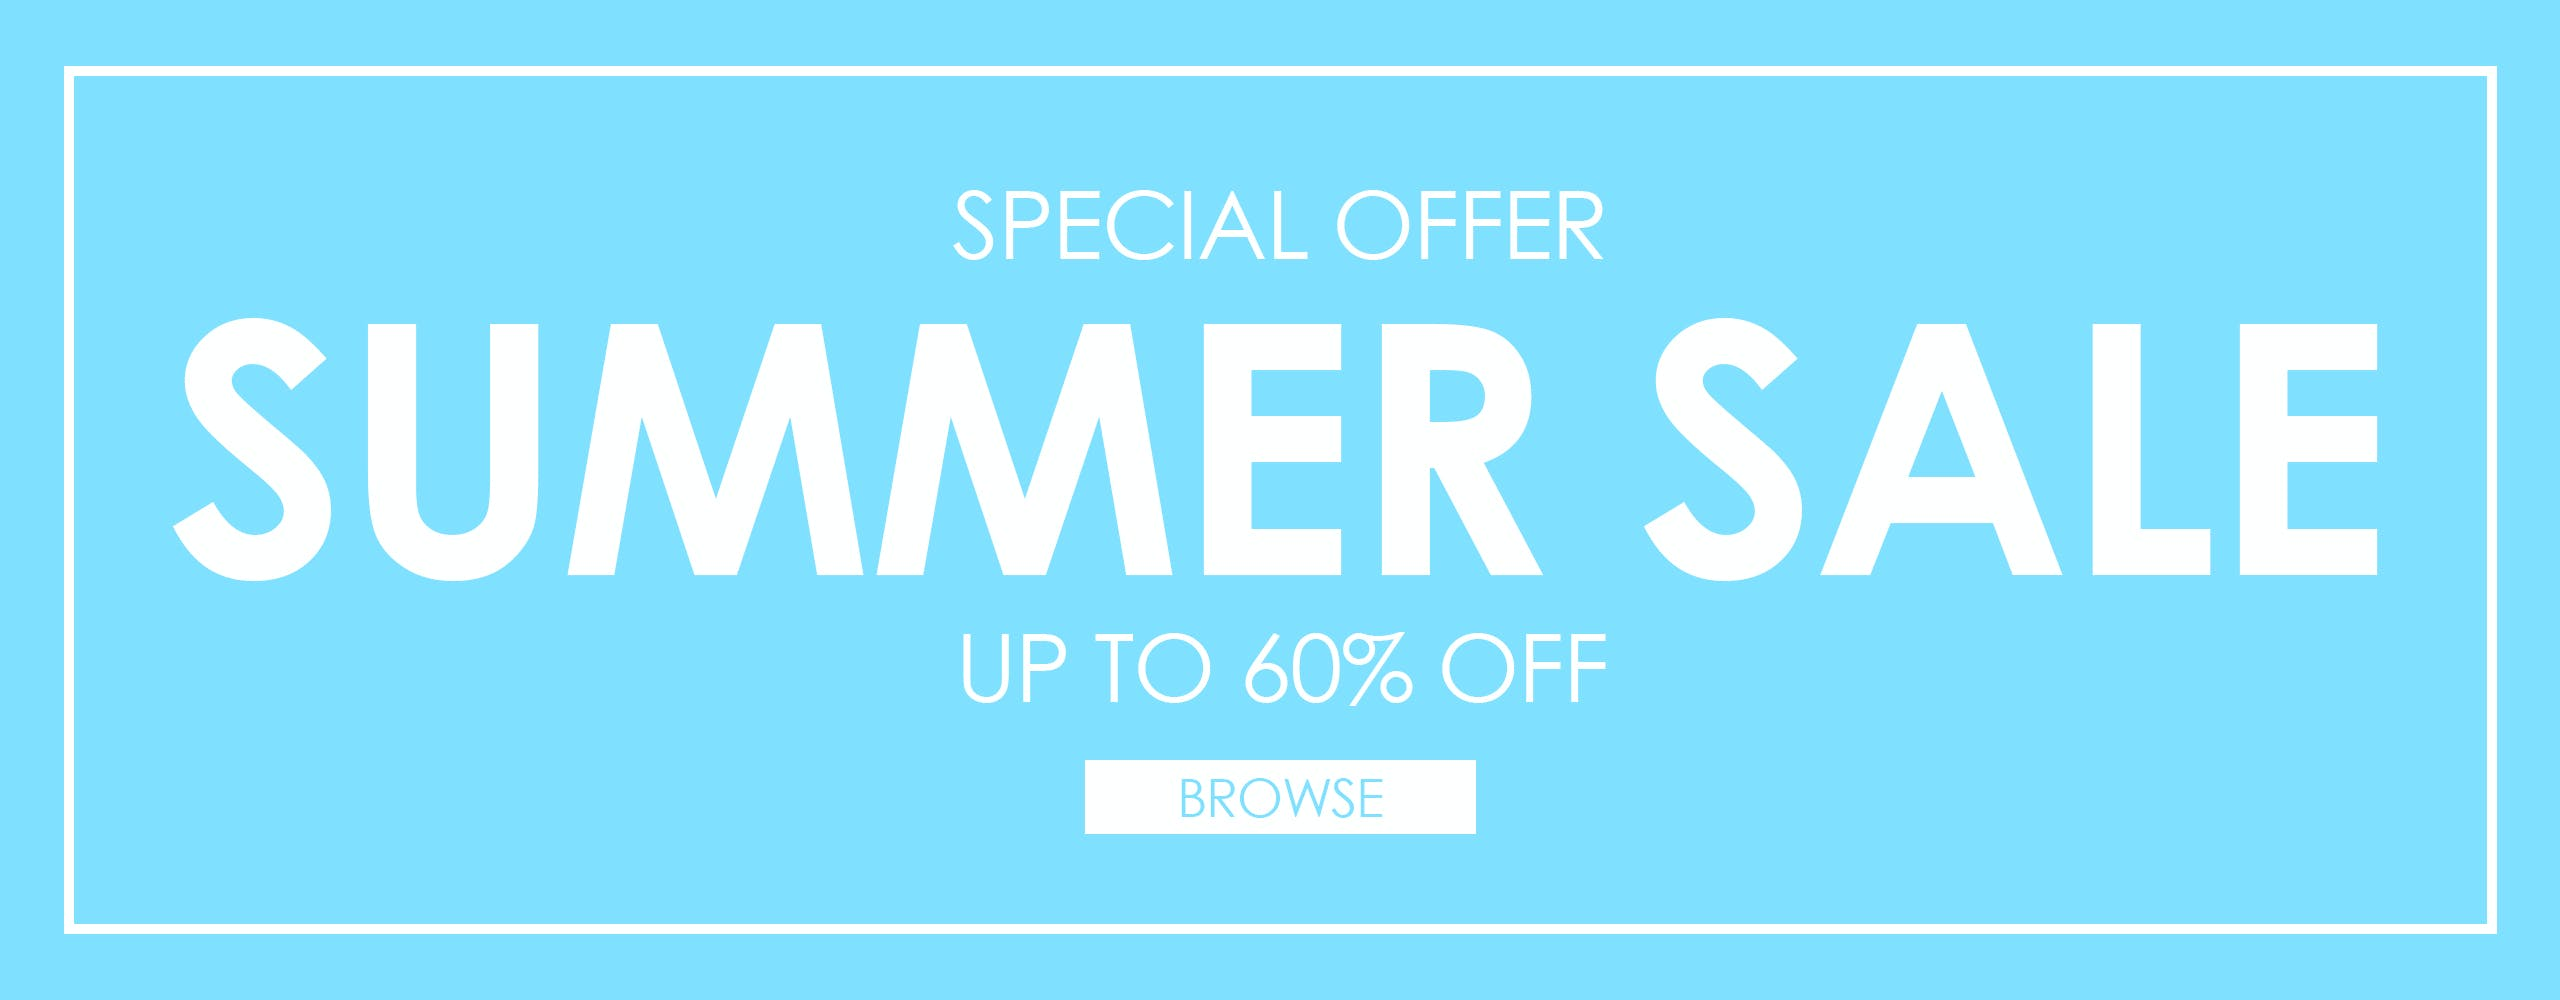 Blitz Summer Sale. Up To 60% OFF